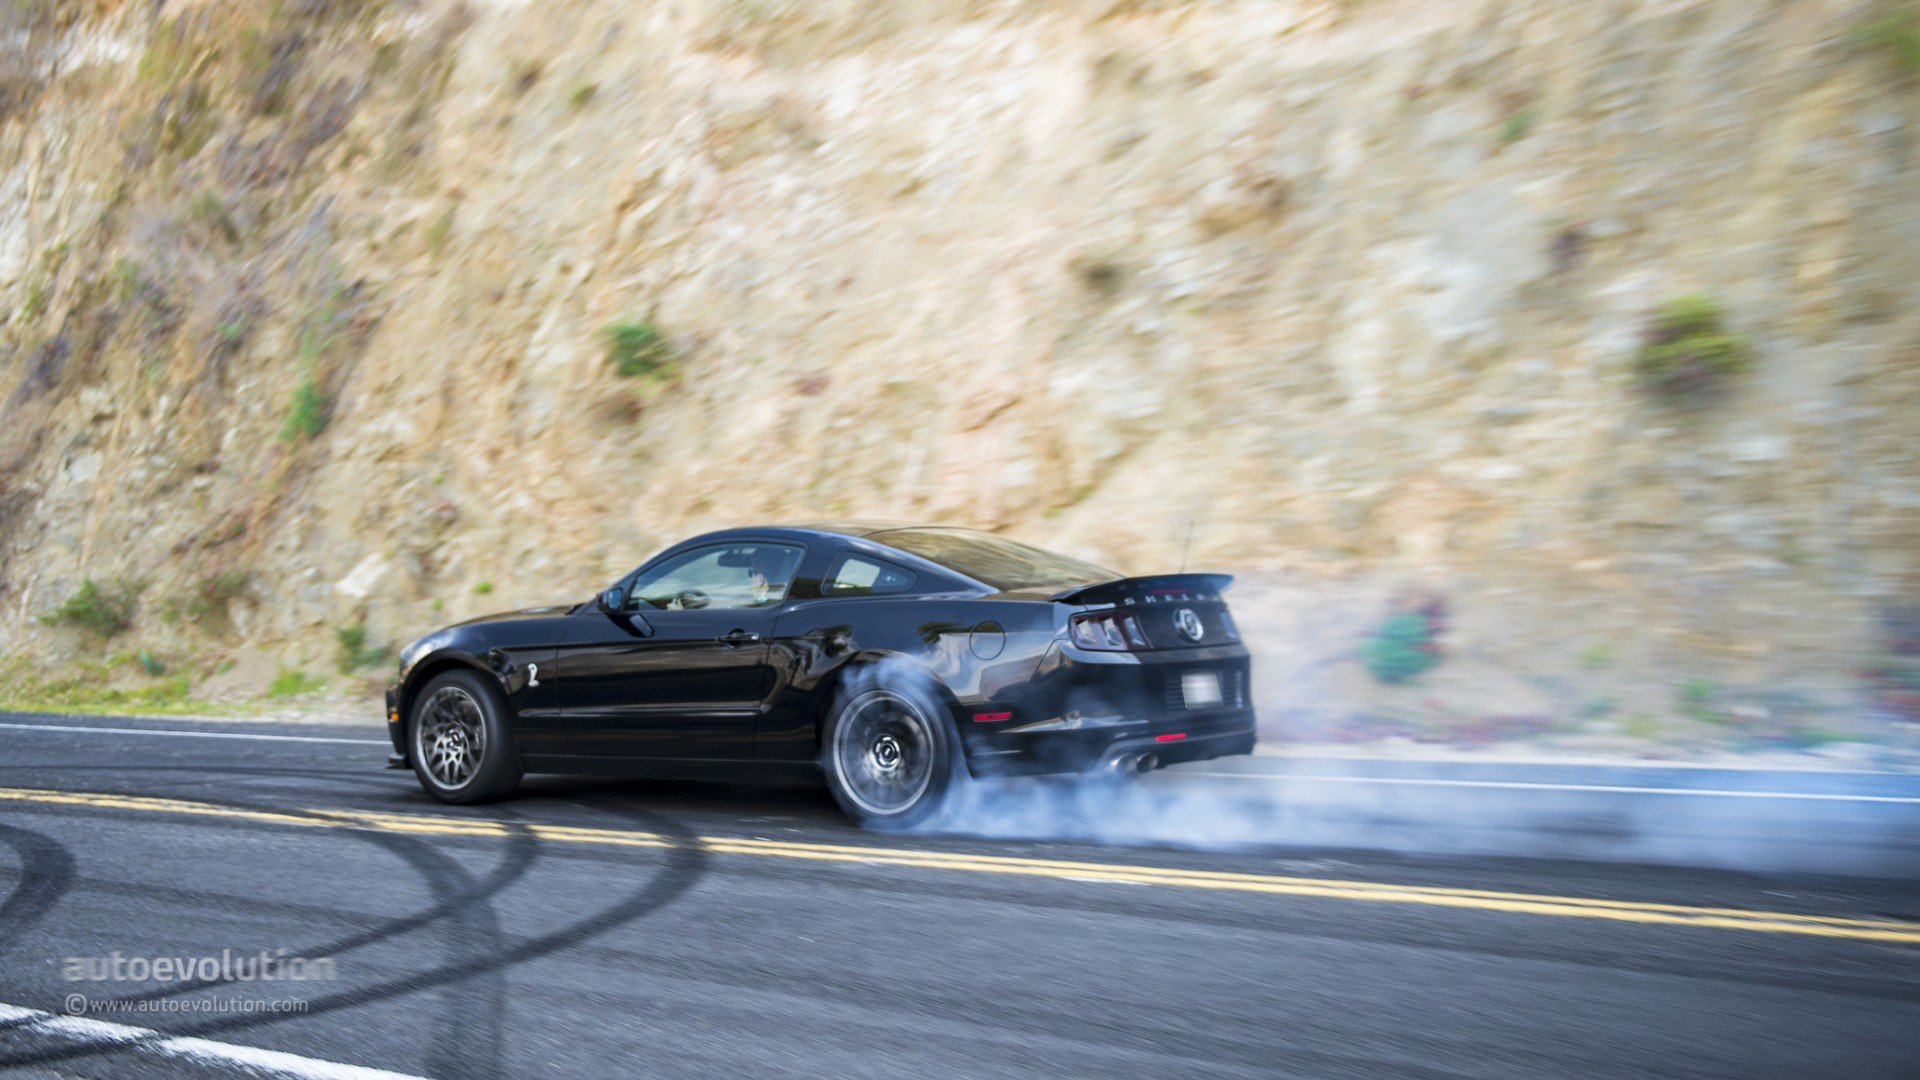 720 Horsepower Mustang 2015 | Autos Post